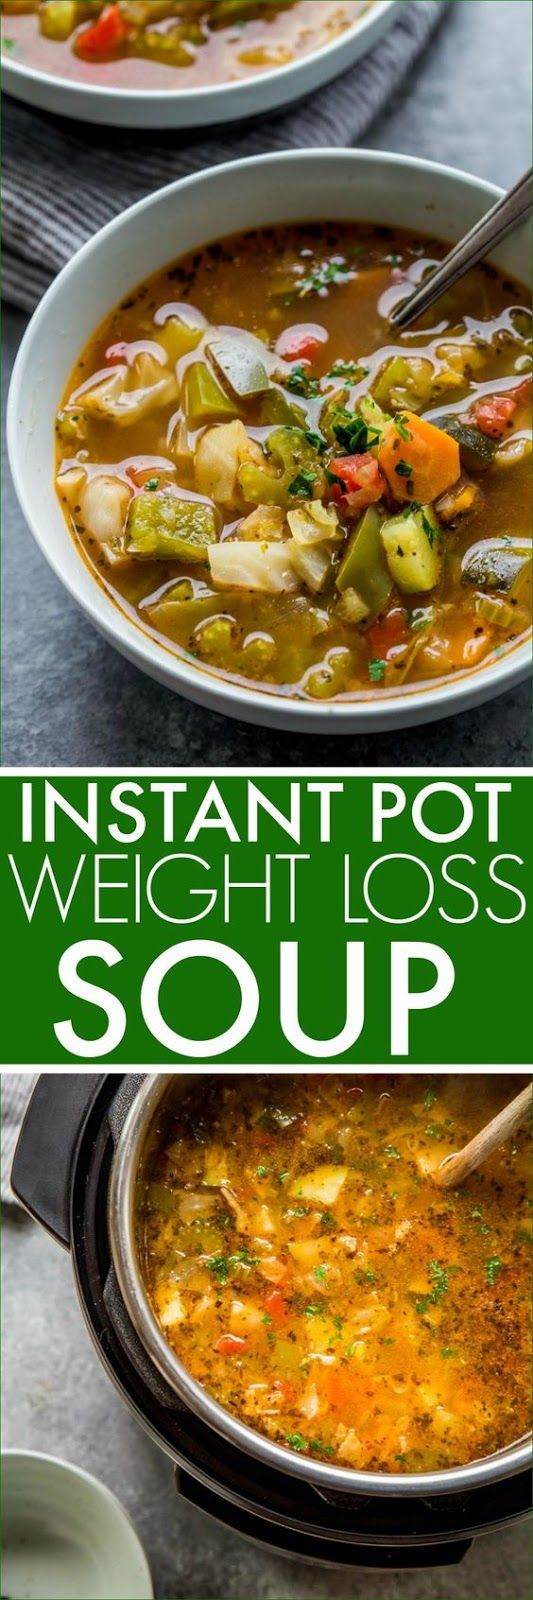 Instant Pot Weight Loss Soup With Stove Top Instructions Healthy